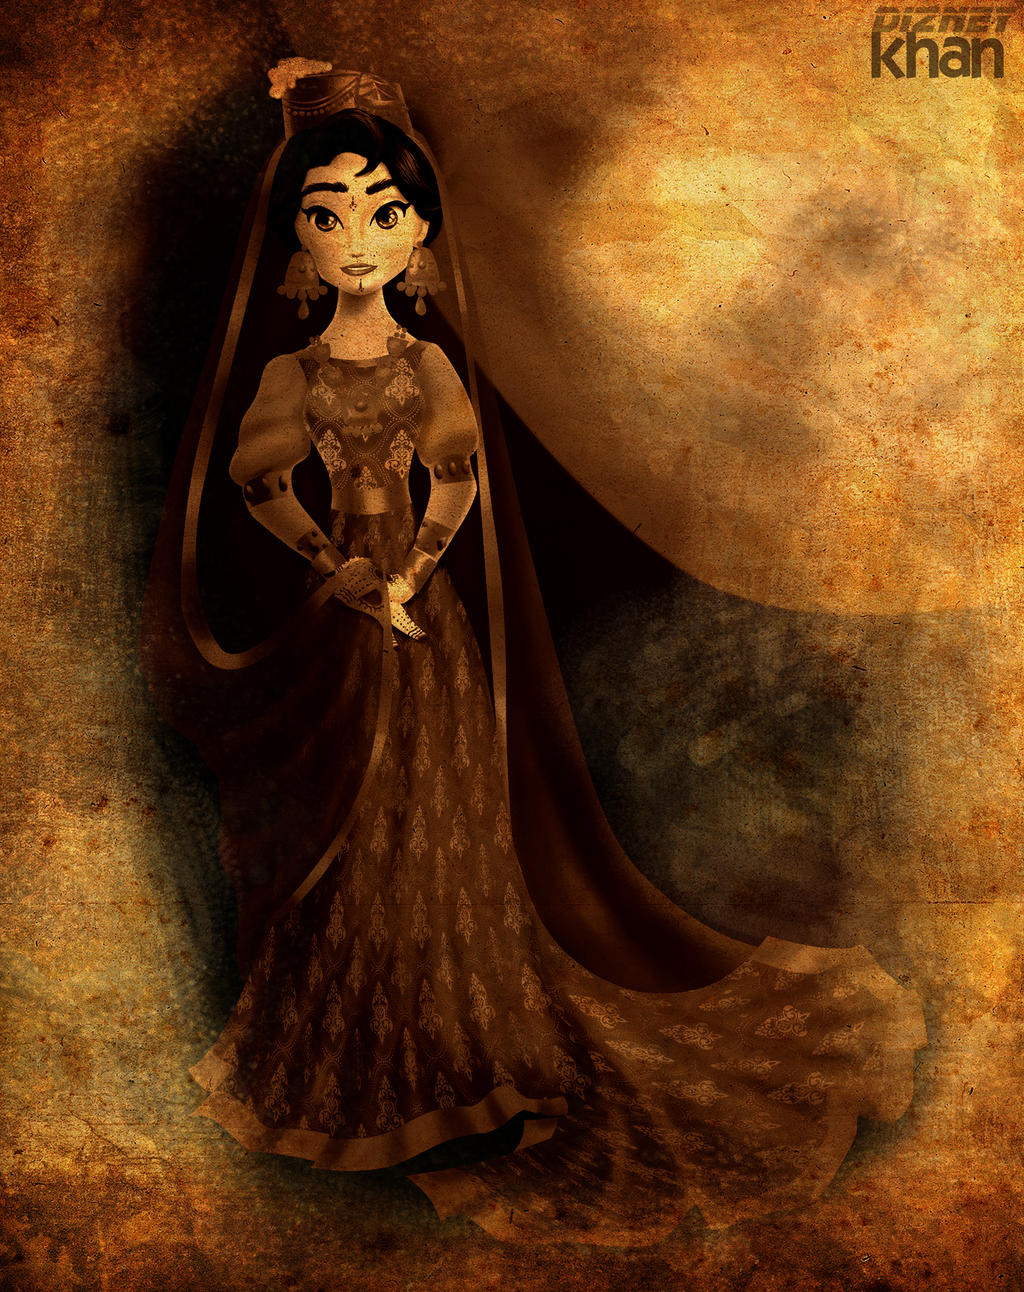 New Disney Princess Maariyah | Search Results | Calendar 2015